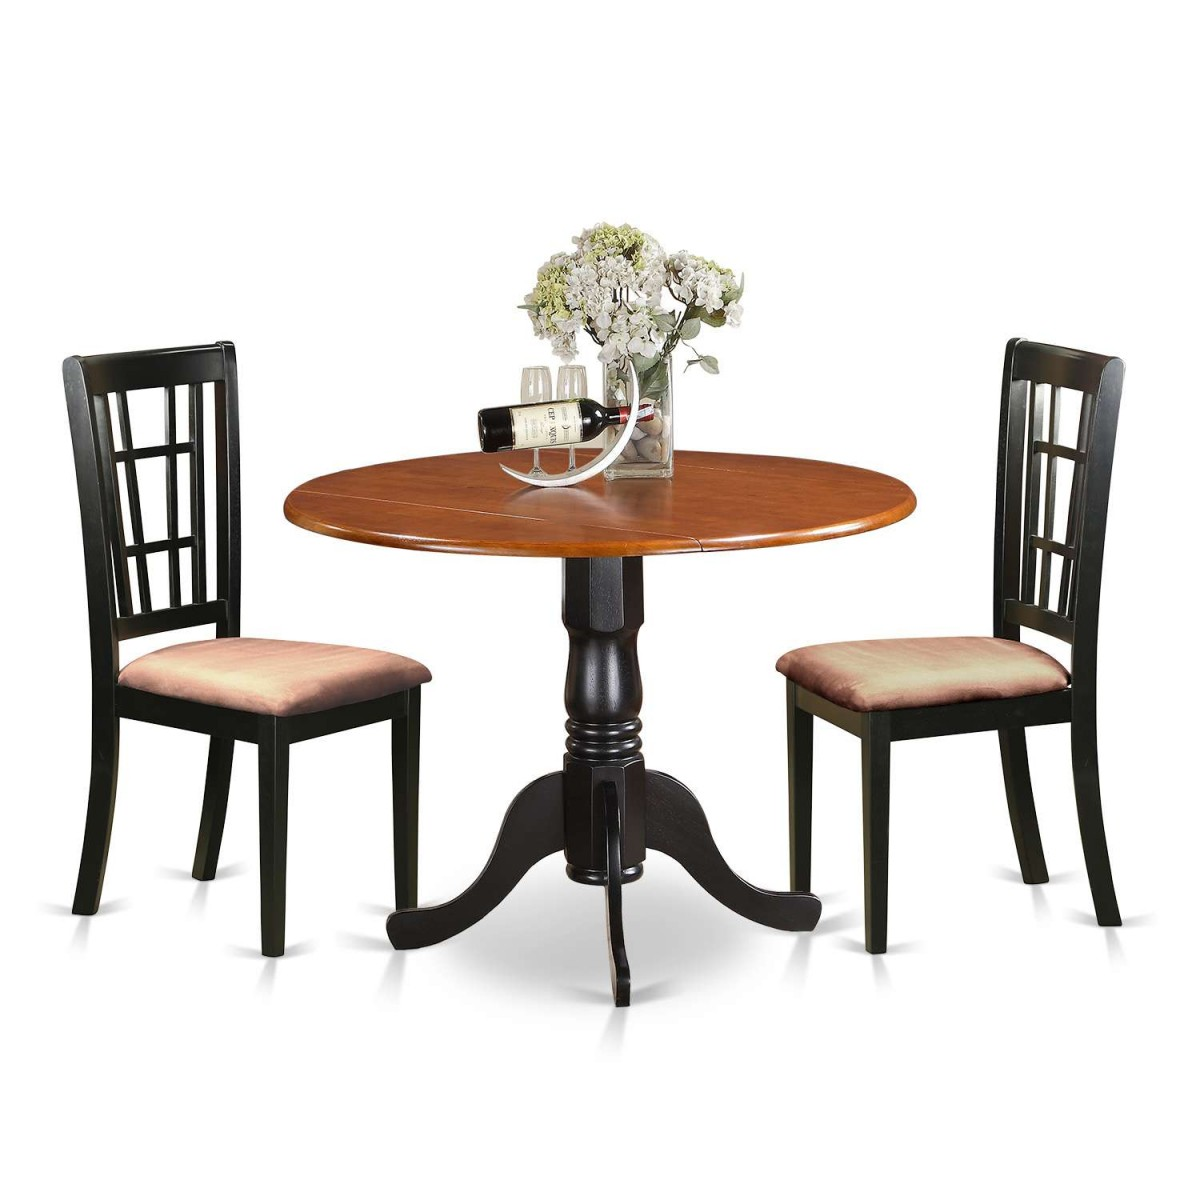 Kitchen Table And Chairs Dublin: East West Furniture Dublin 3 Piece Kitchen Table Set